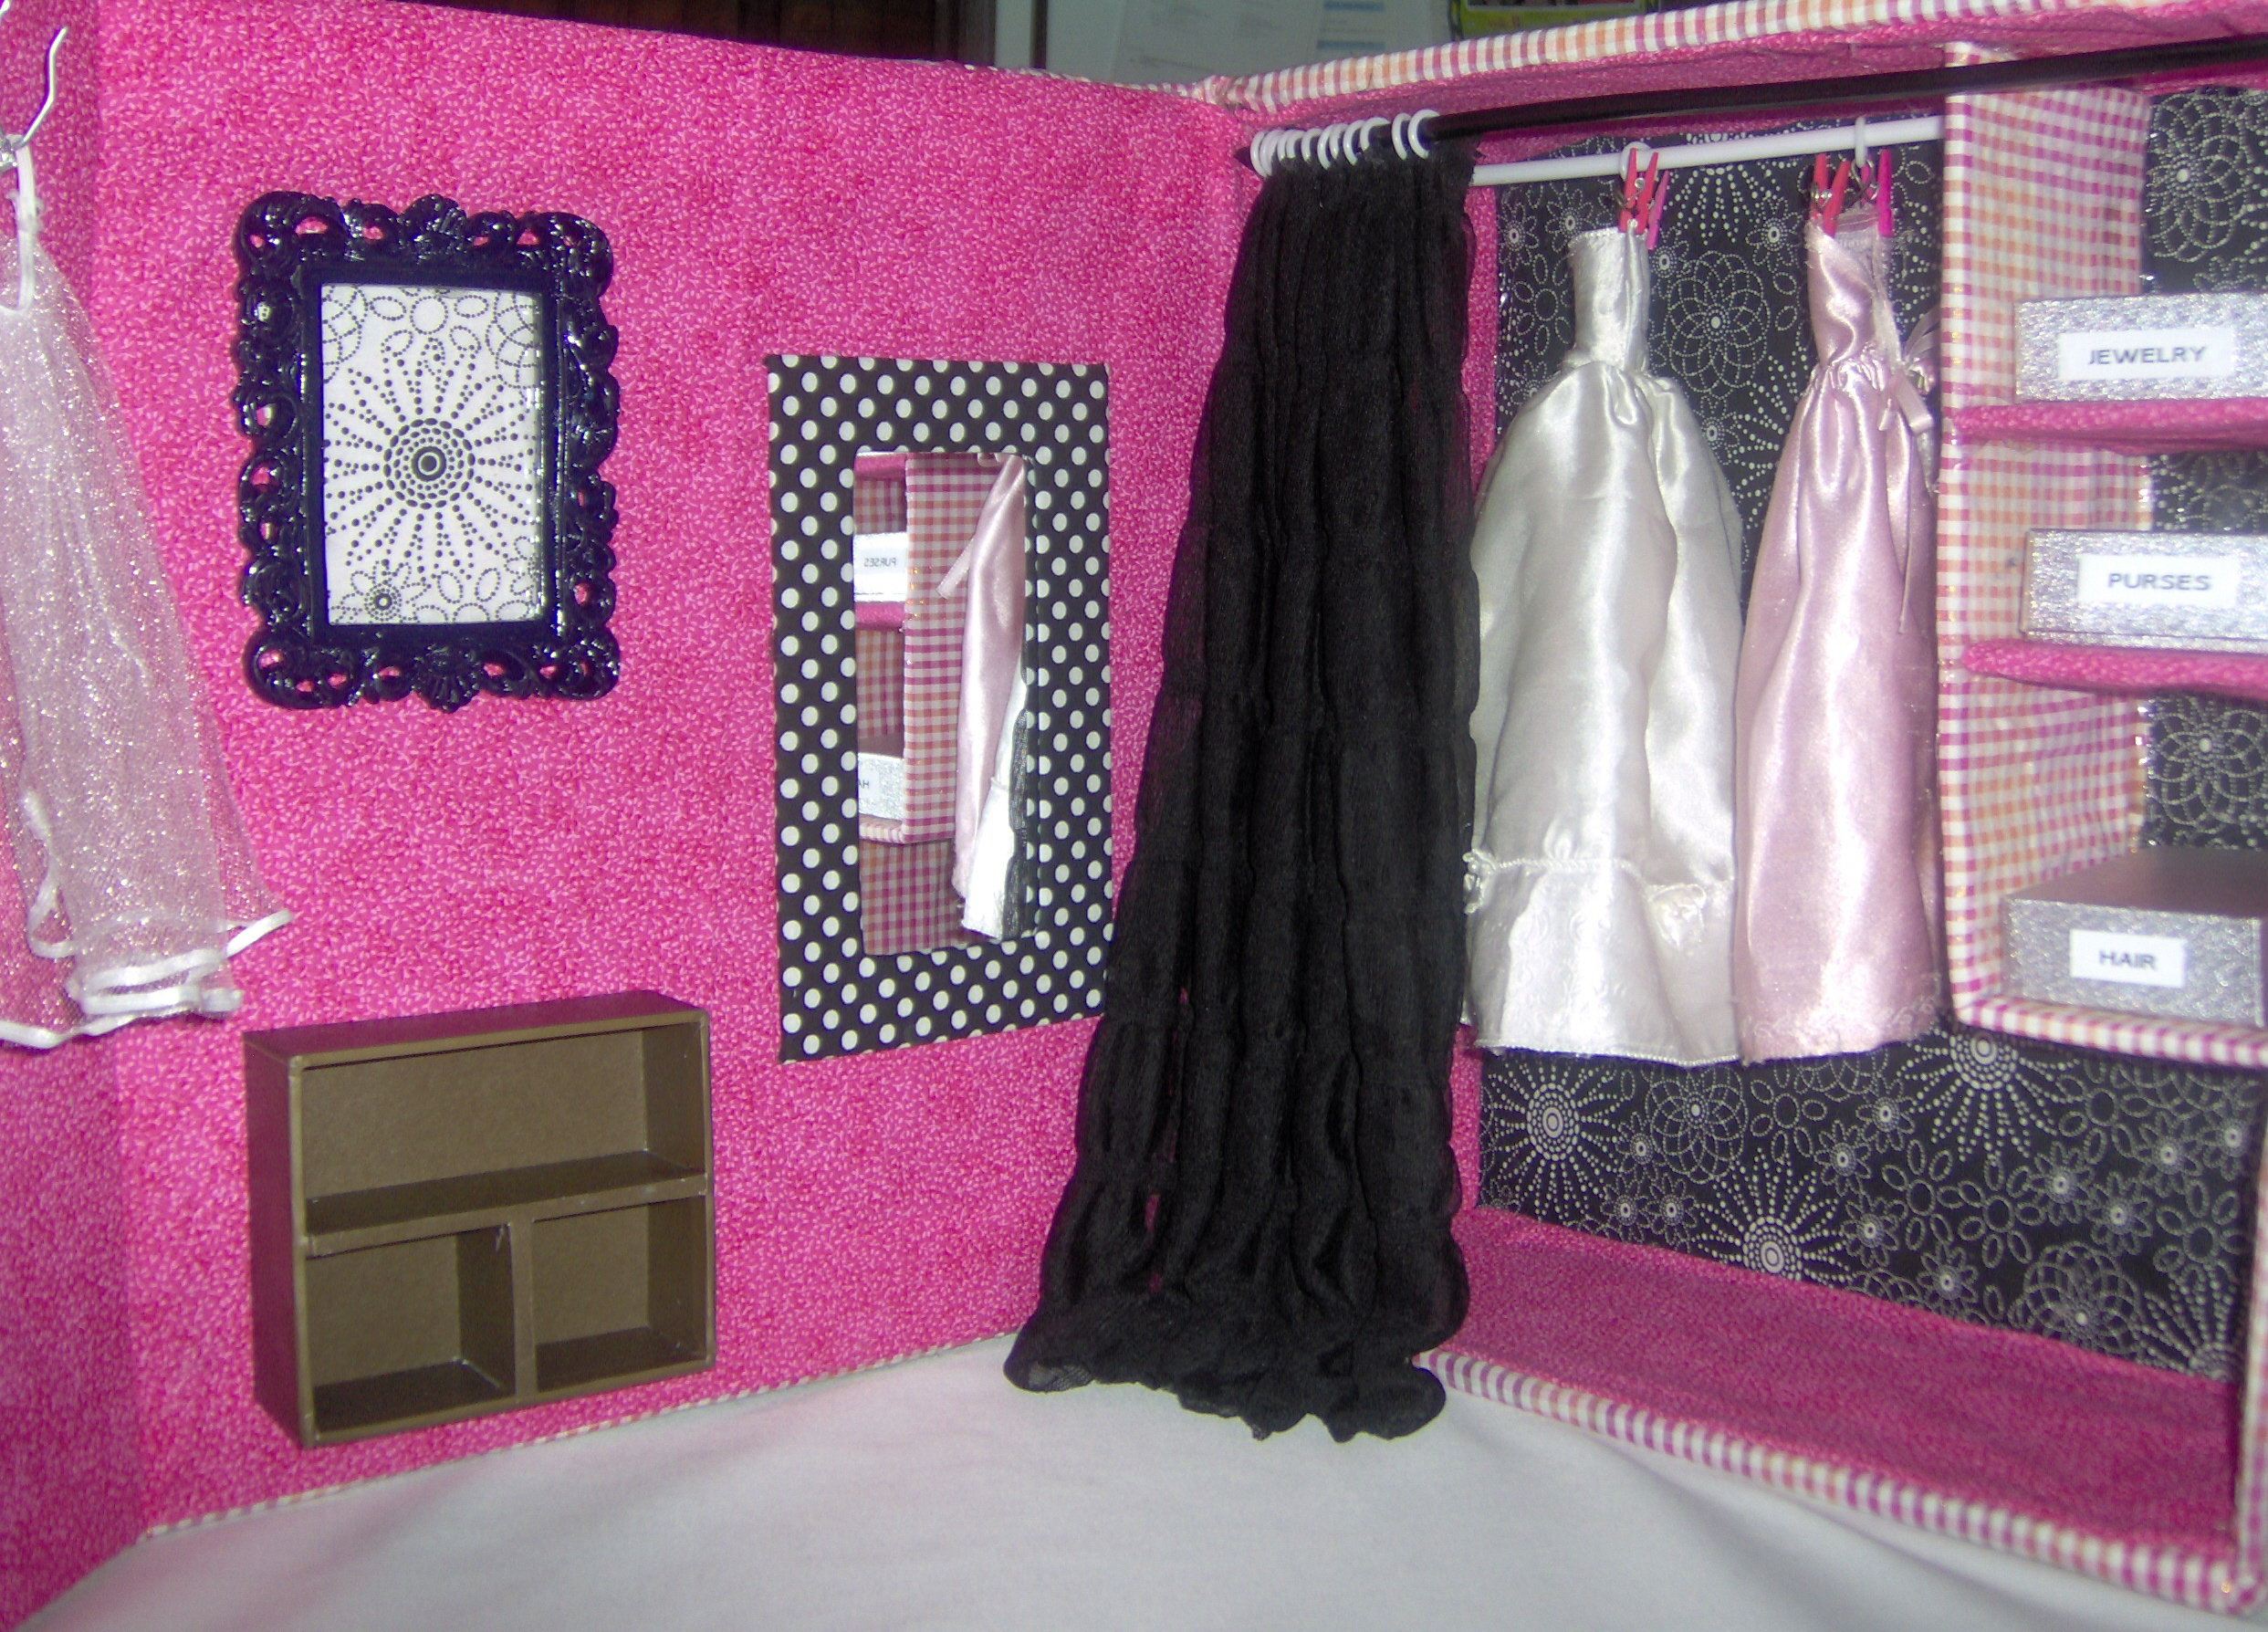 ideas on clothing l barbie diy view for storage about larger closet bedroom clothes best